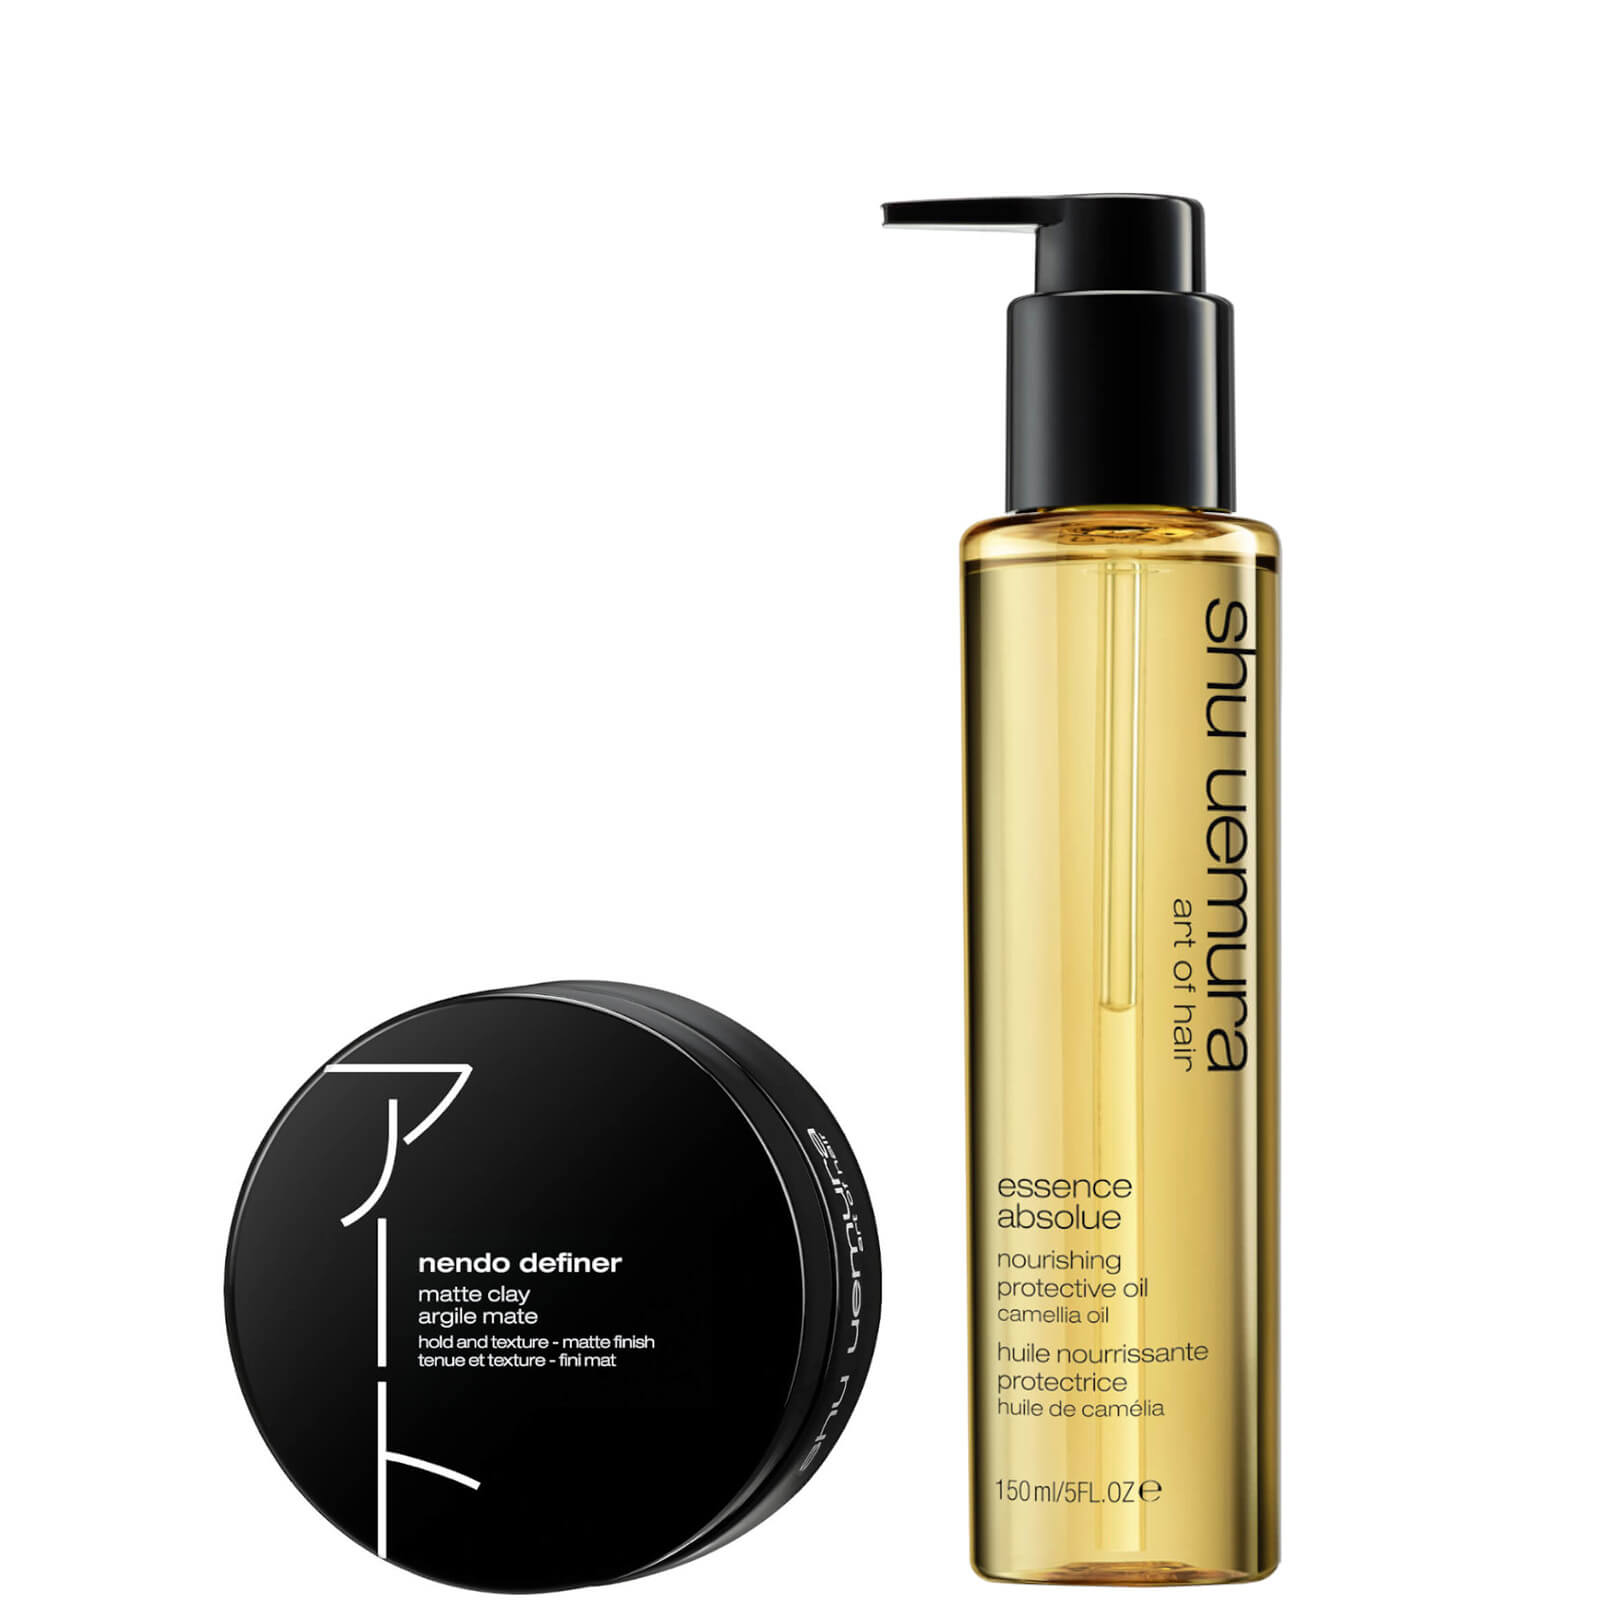 Shu Uemura Art of Hair Nendo Definer and Essence Absolue Oil Styling Duo